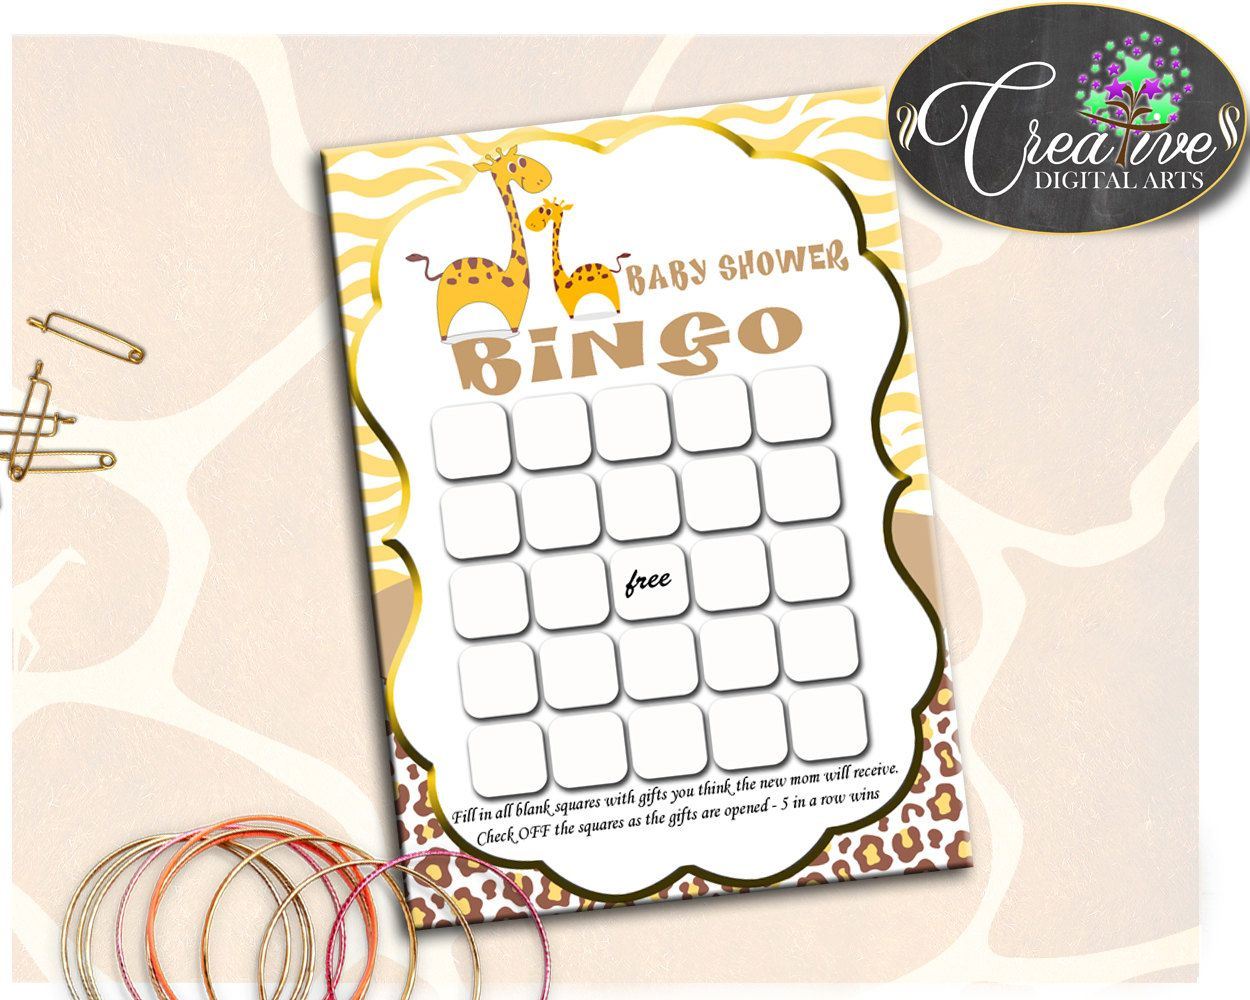 Baby Shower Animals Brown Theme Baby Check Off Squares Guessing Game BINGO GIFT GAME, Party Plan, Party Decorations - sa001 #babyshowerparty #babyshowerinvites